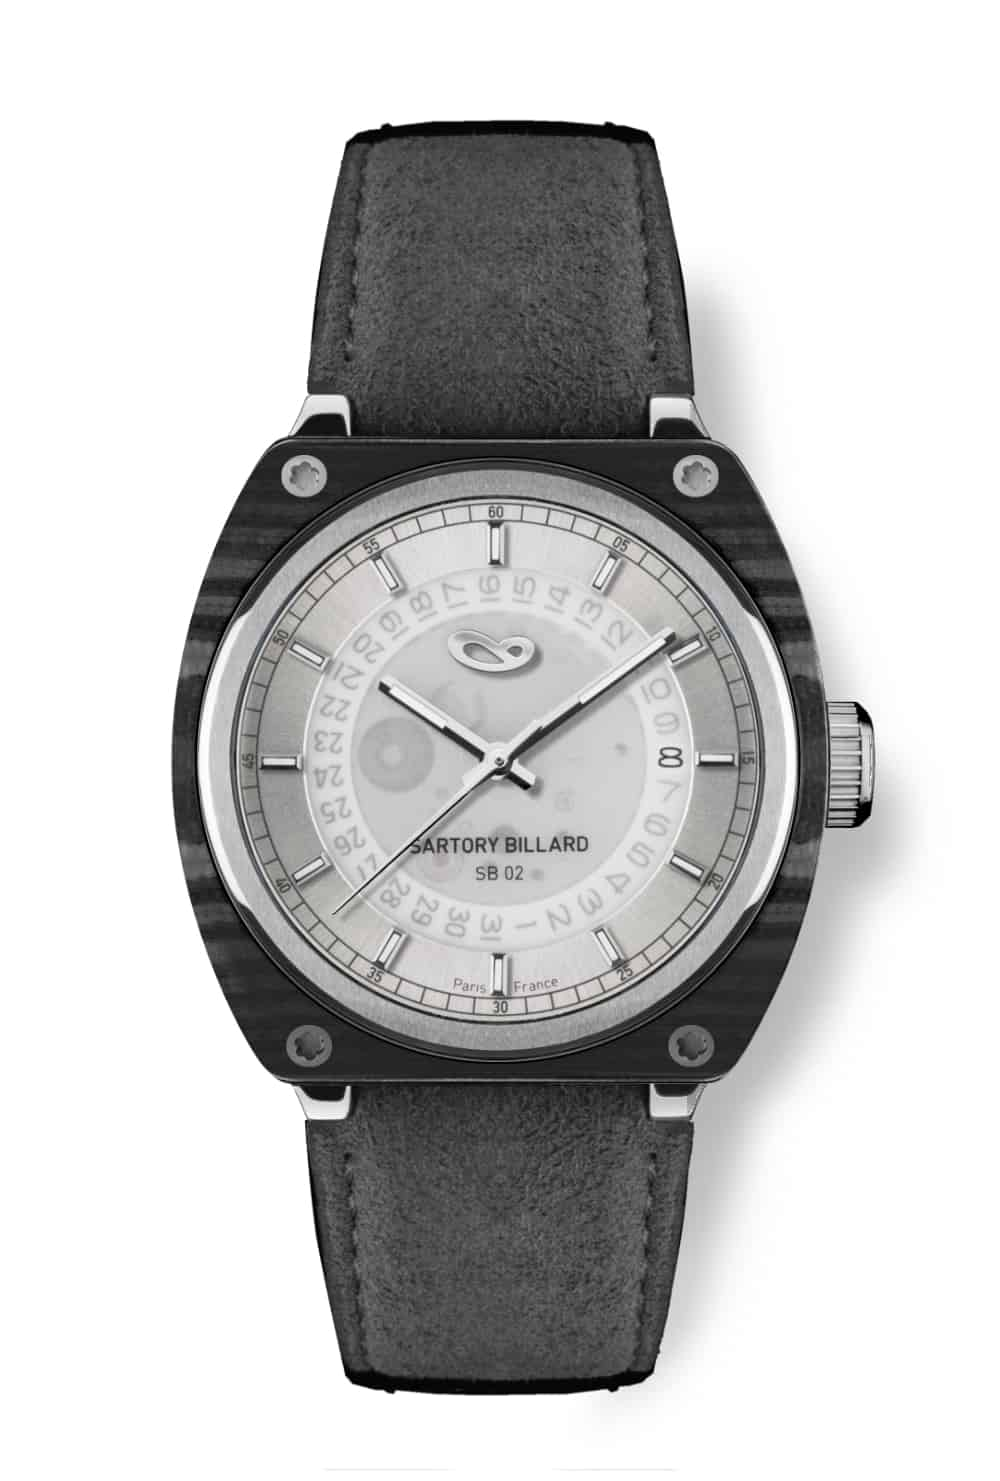 carbone watch and sliver dial, montre en carbone